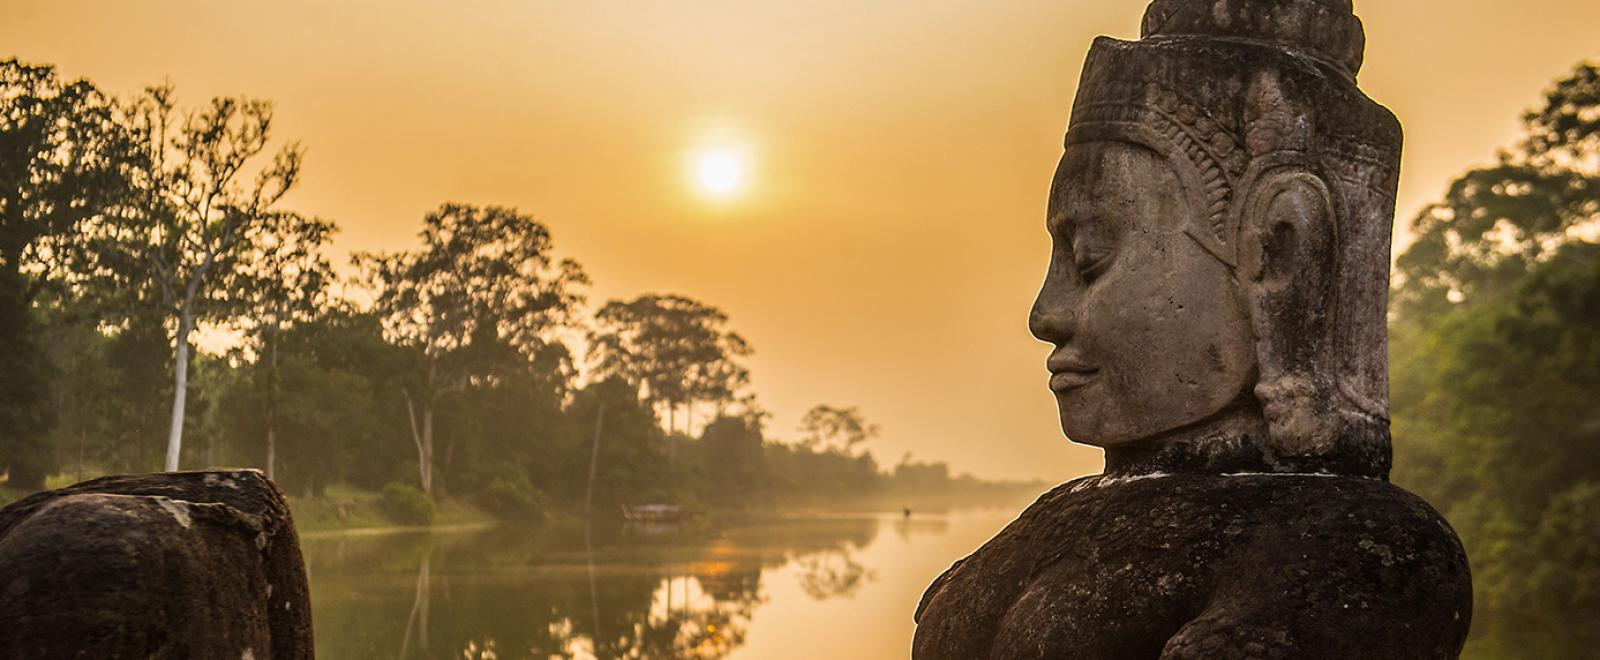 Explore Cambodian culture on a planned holiday just for over 50s.